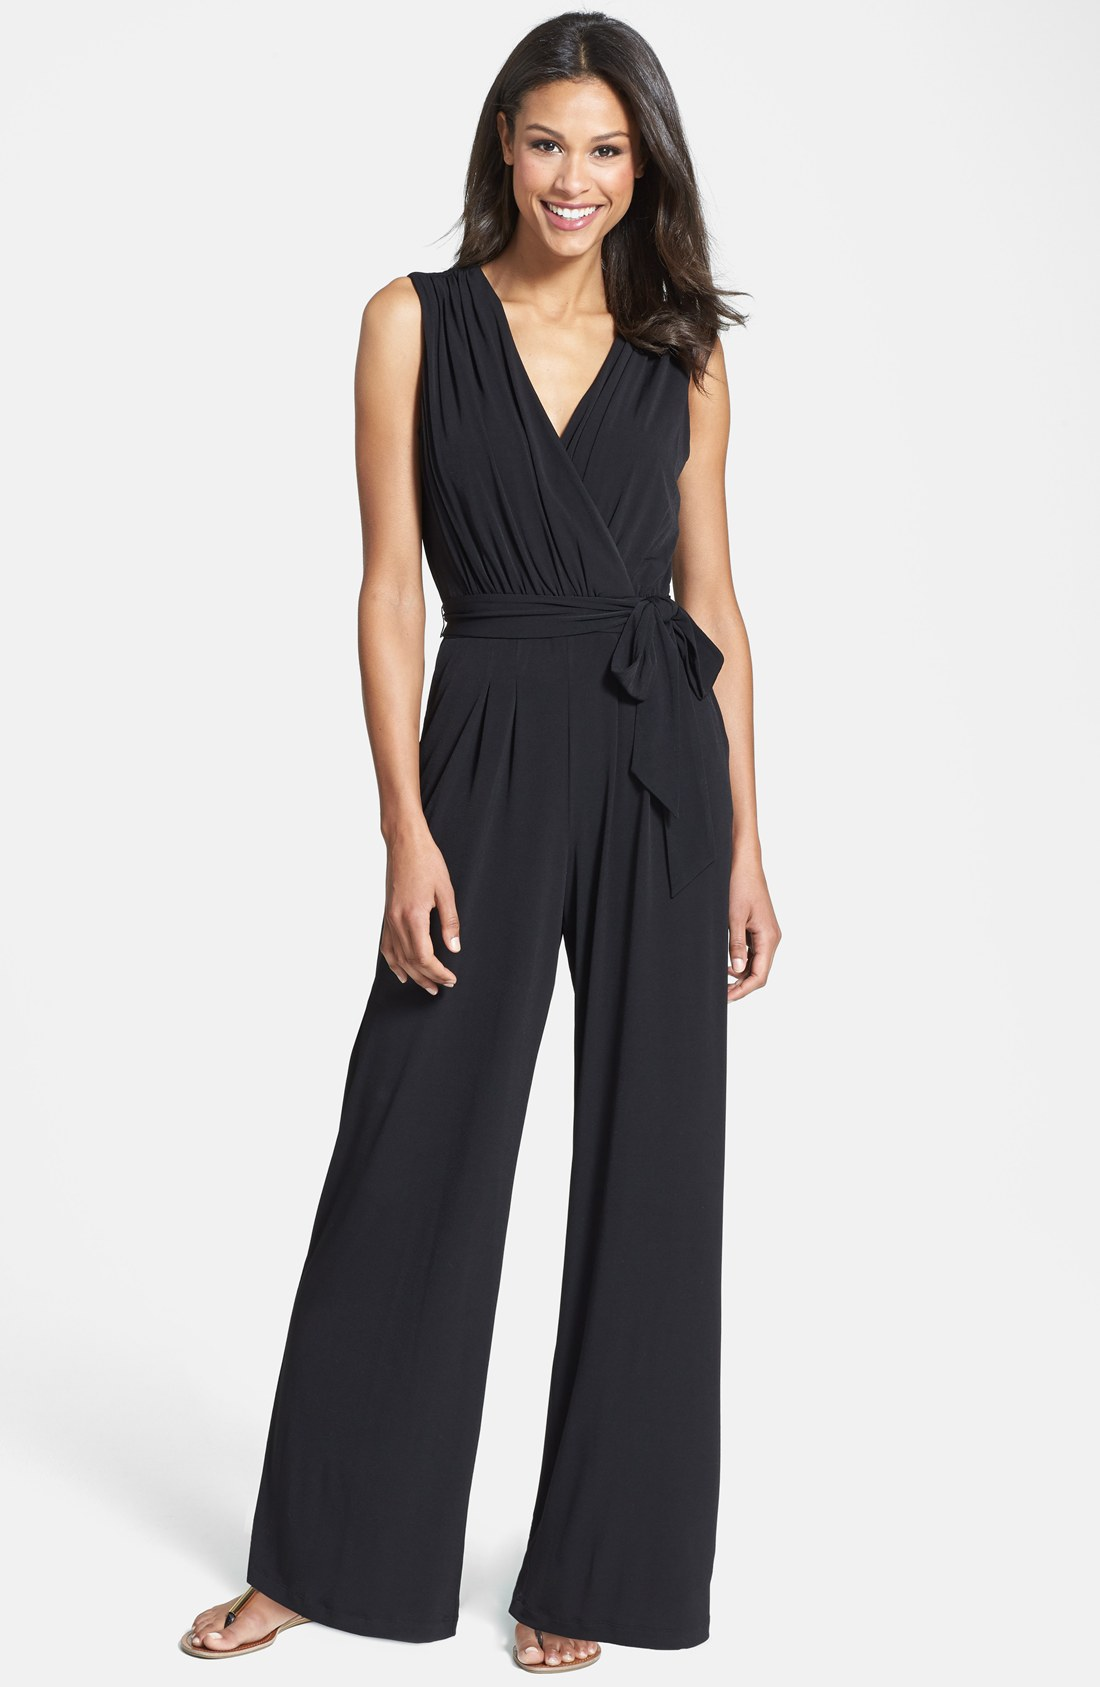 Women's Jumpsuits – Sizes, Retailers and Designs